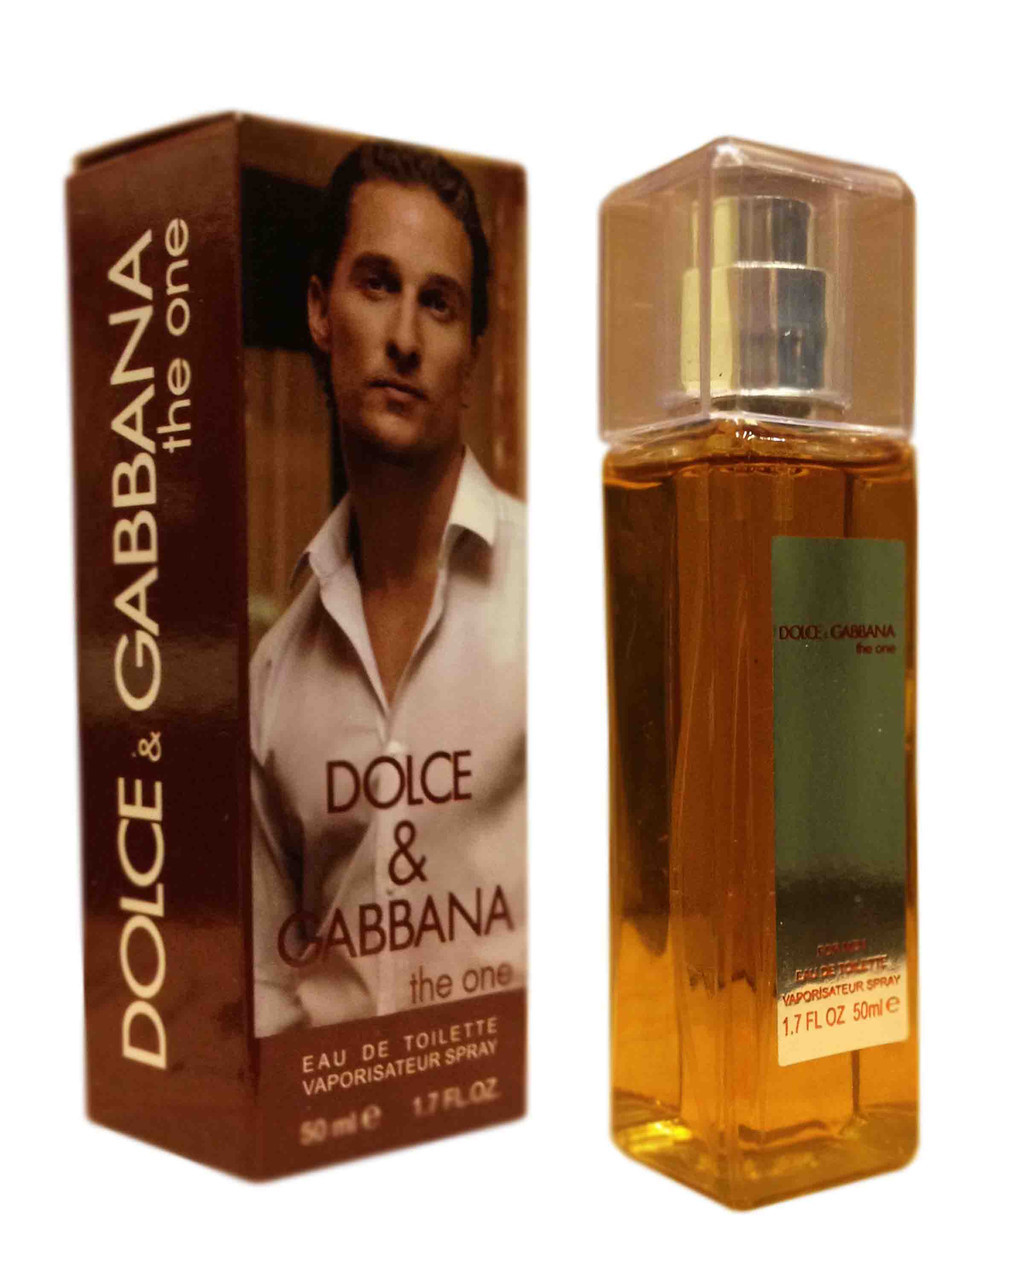 Dolce Gabbana The One pour Homme edt - Crystal Tube 50ml реплика